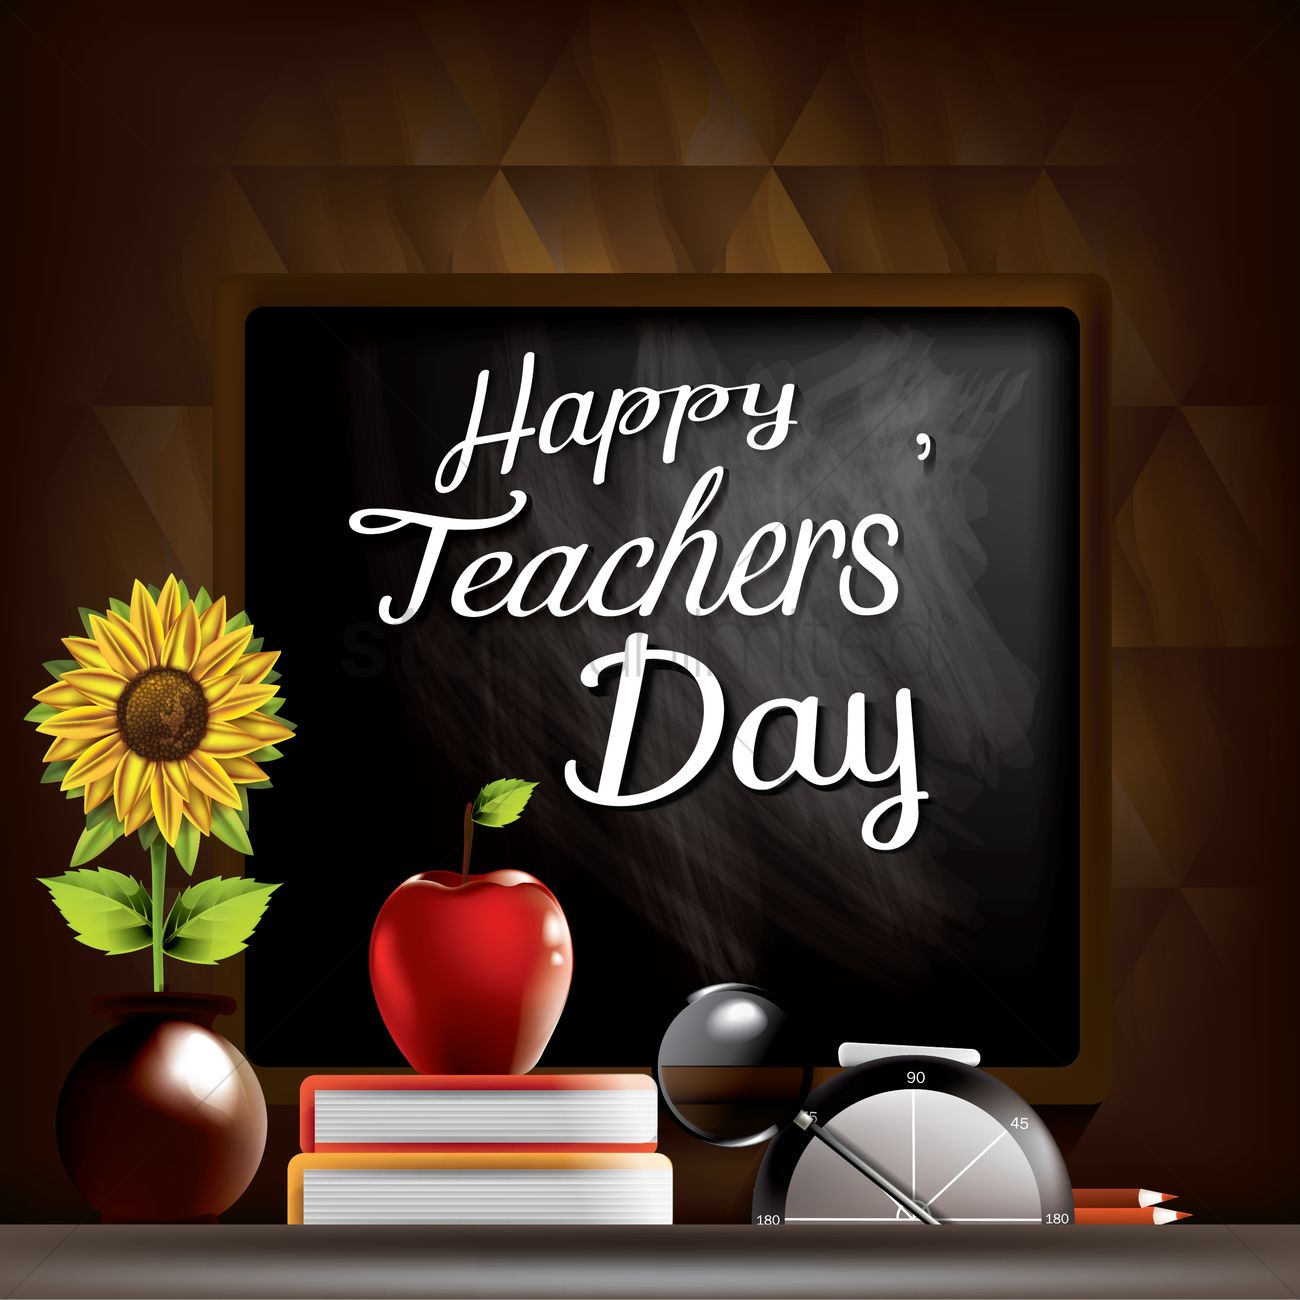 teachers day concept vector image 1996006 stockunlimited